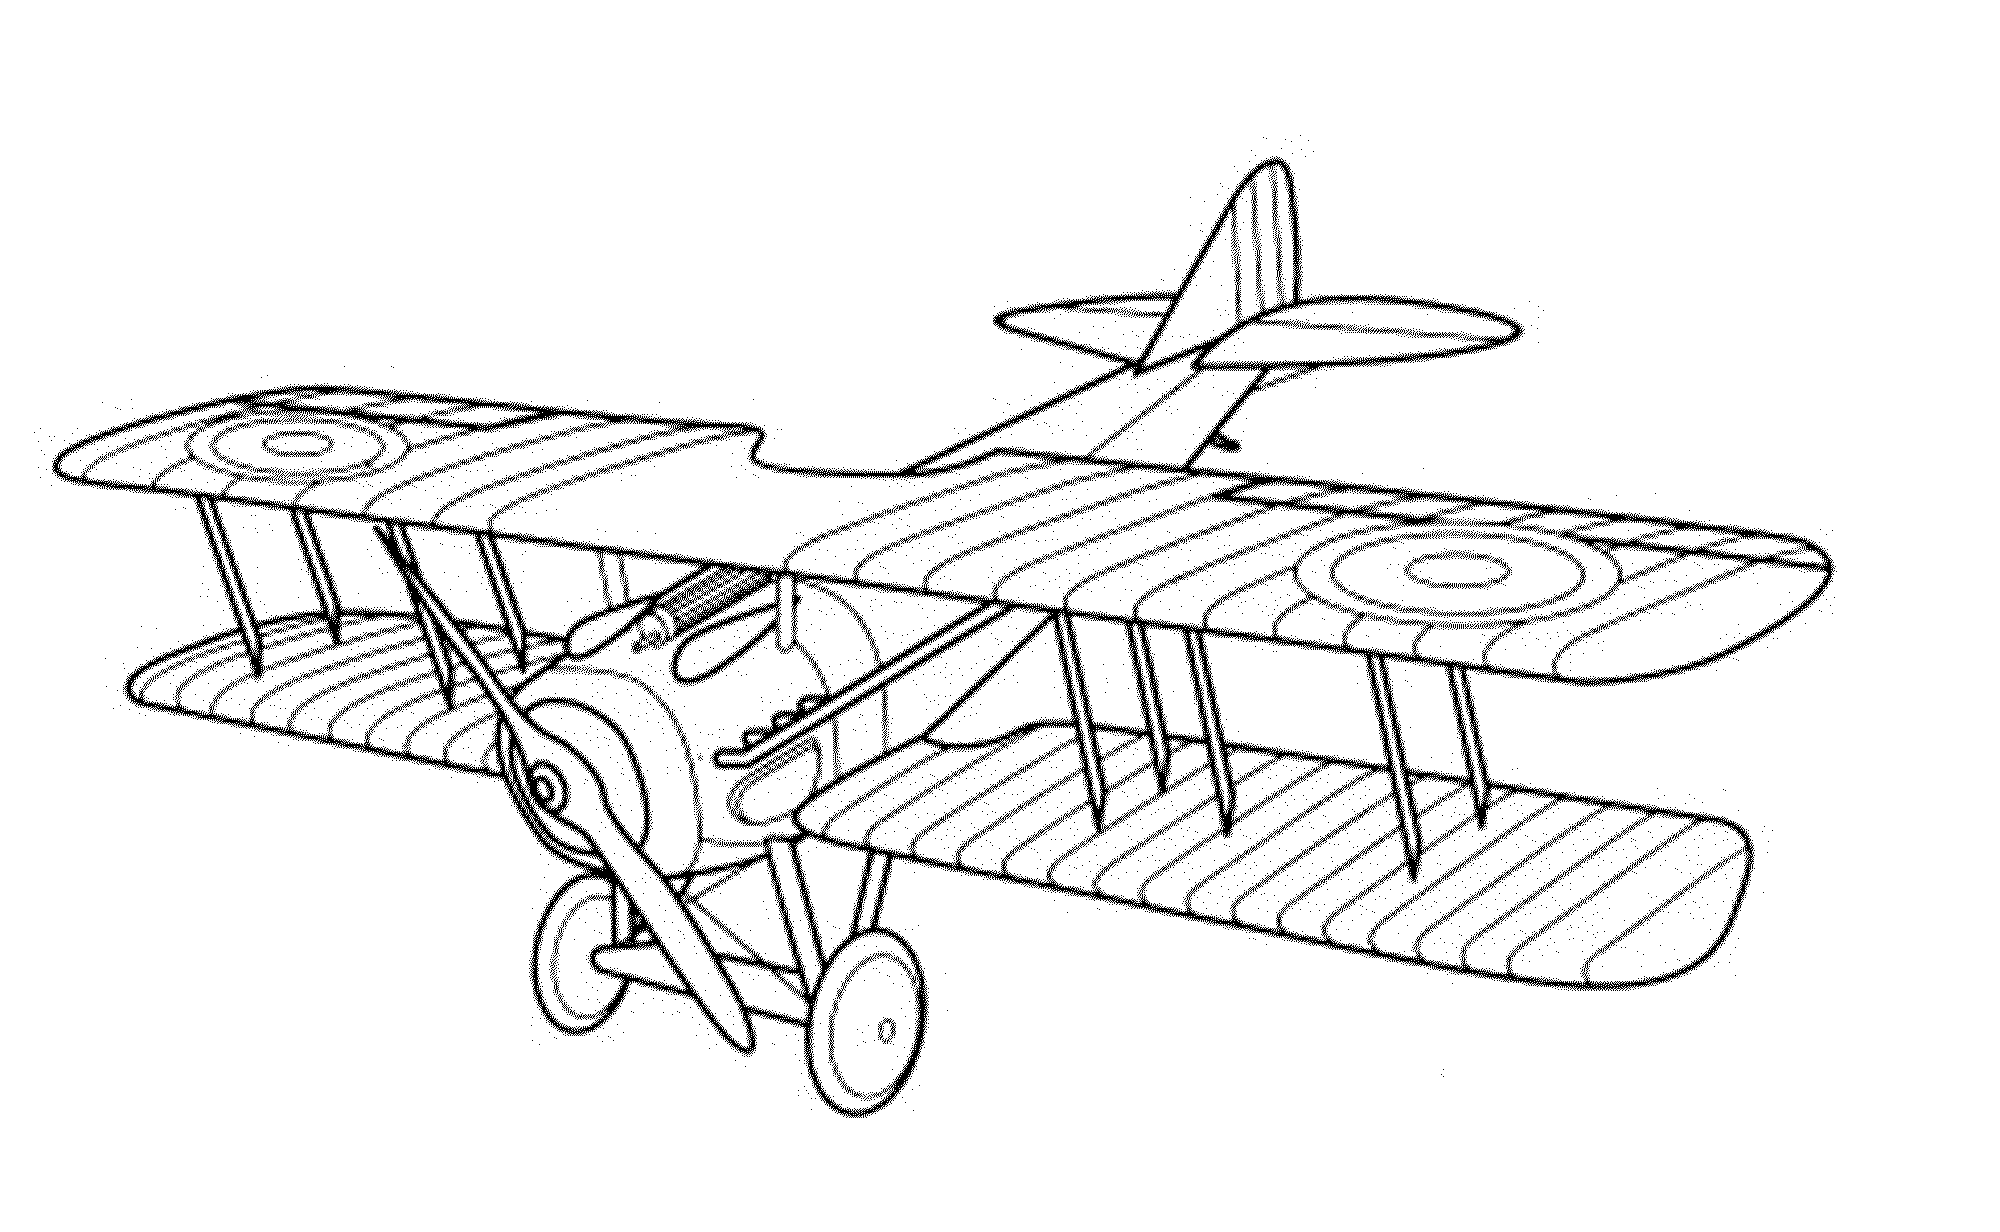 planes coloring pictures fighter aircraft coloring pages to download and print for free planes coloring pictures